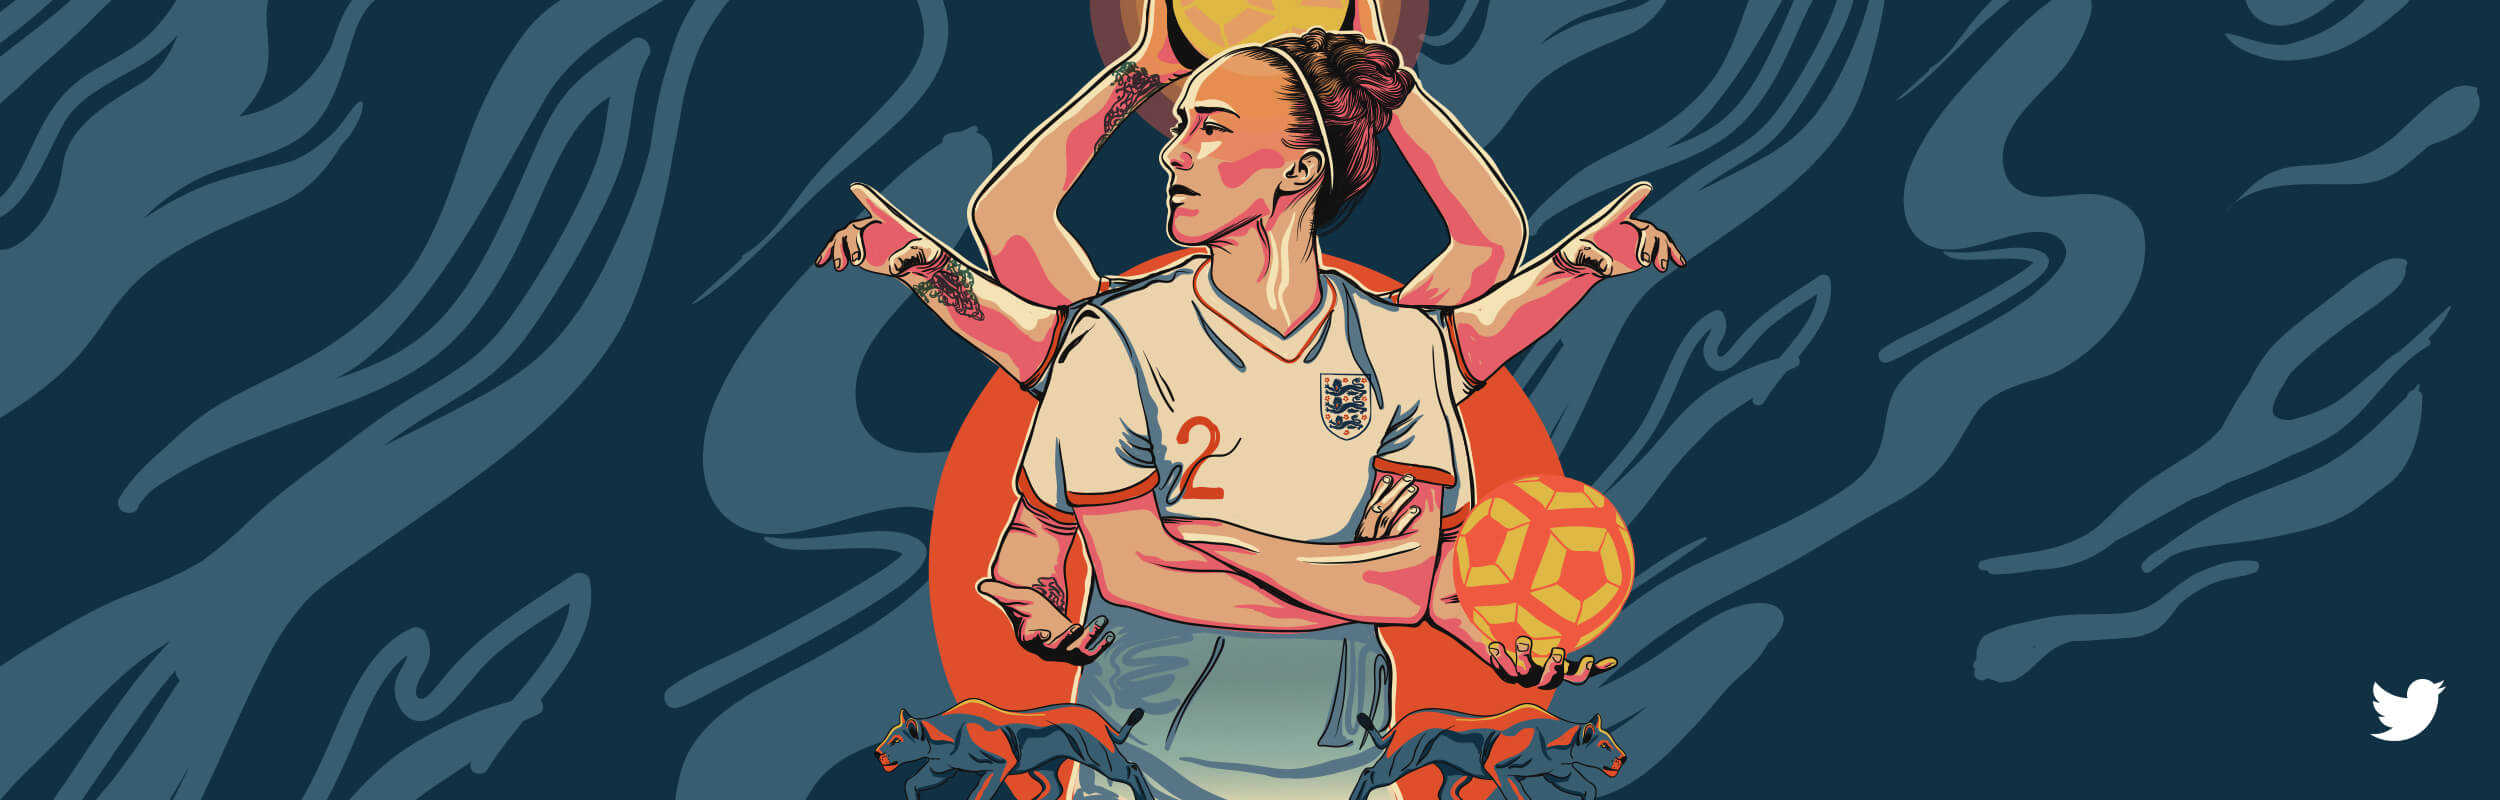 LucyBronze-copy-1